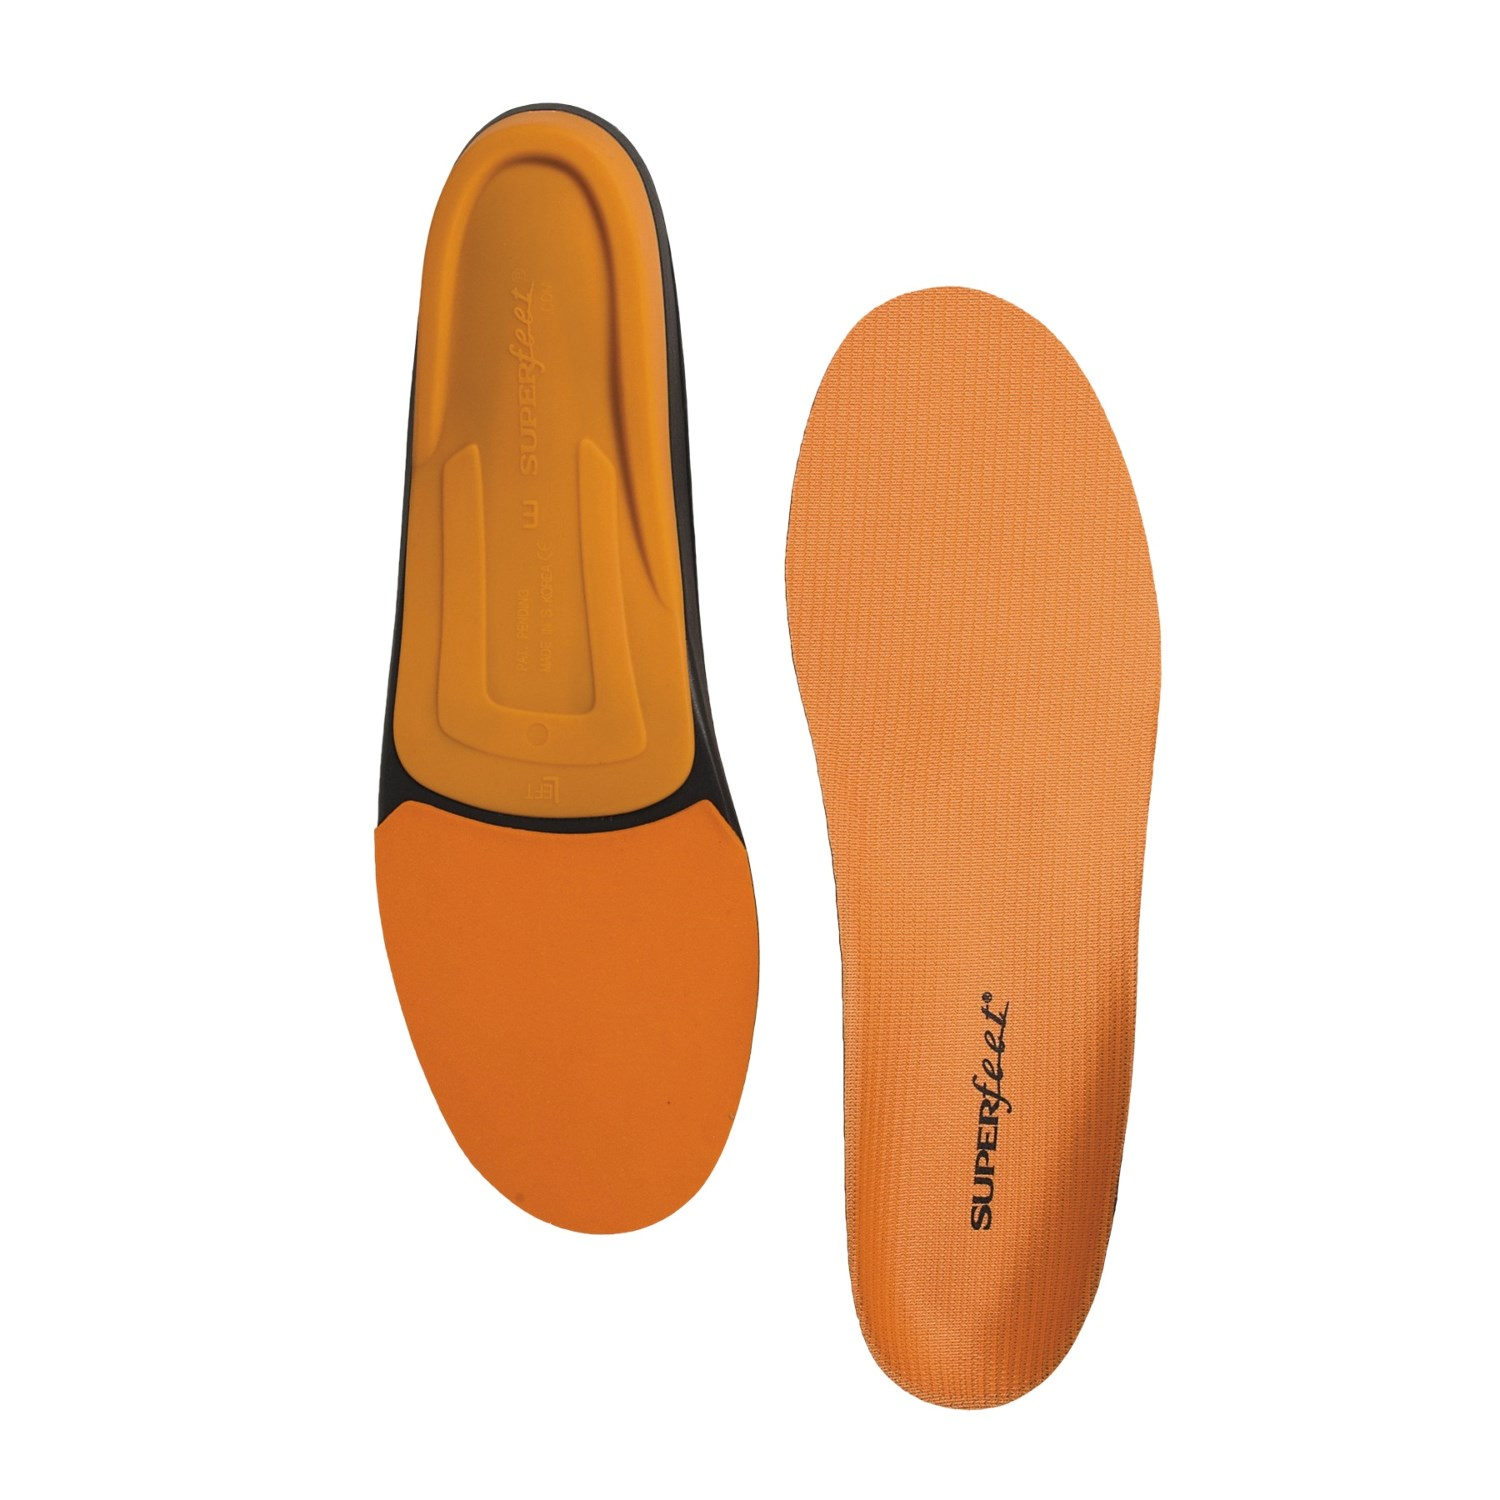 Best Shoe Inserts For High Arches